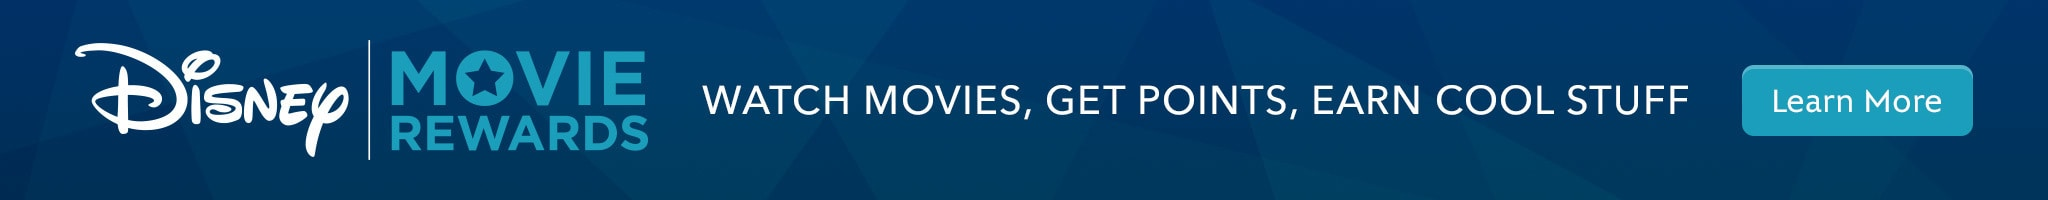 Disney Movie Rewards Watch Movies, get points, earn cools stuff